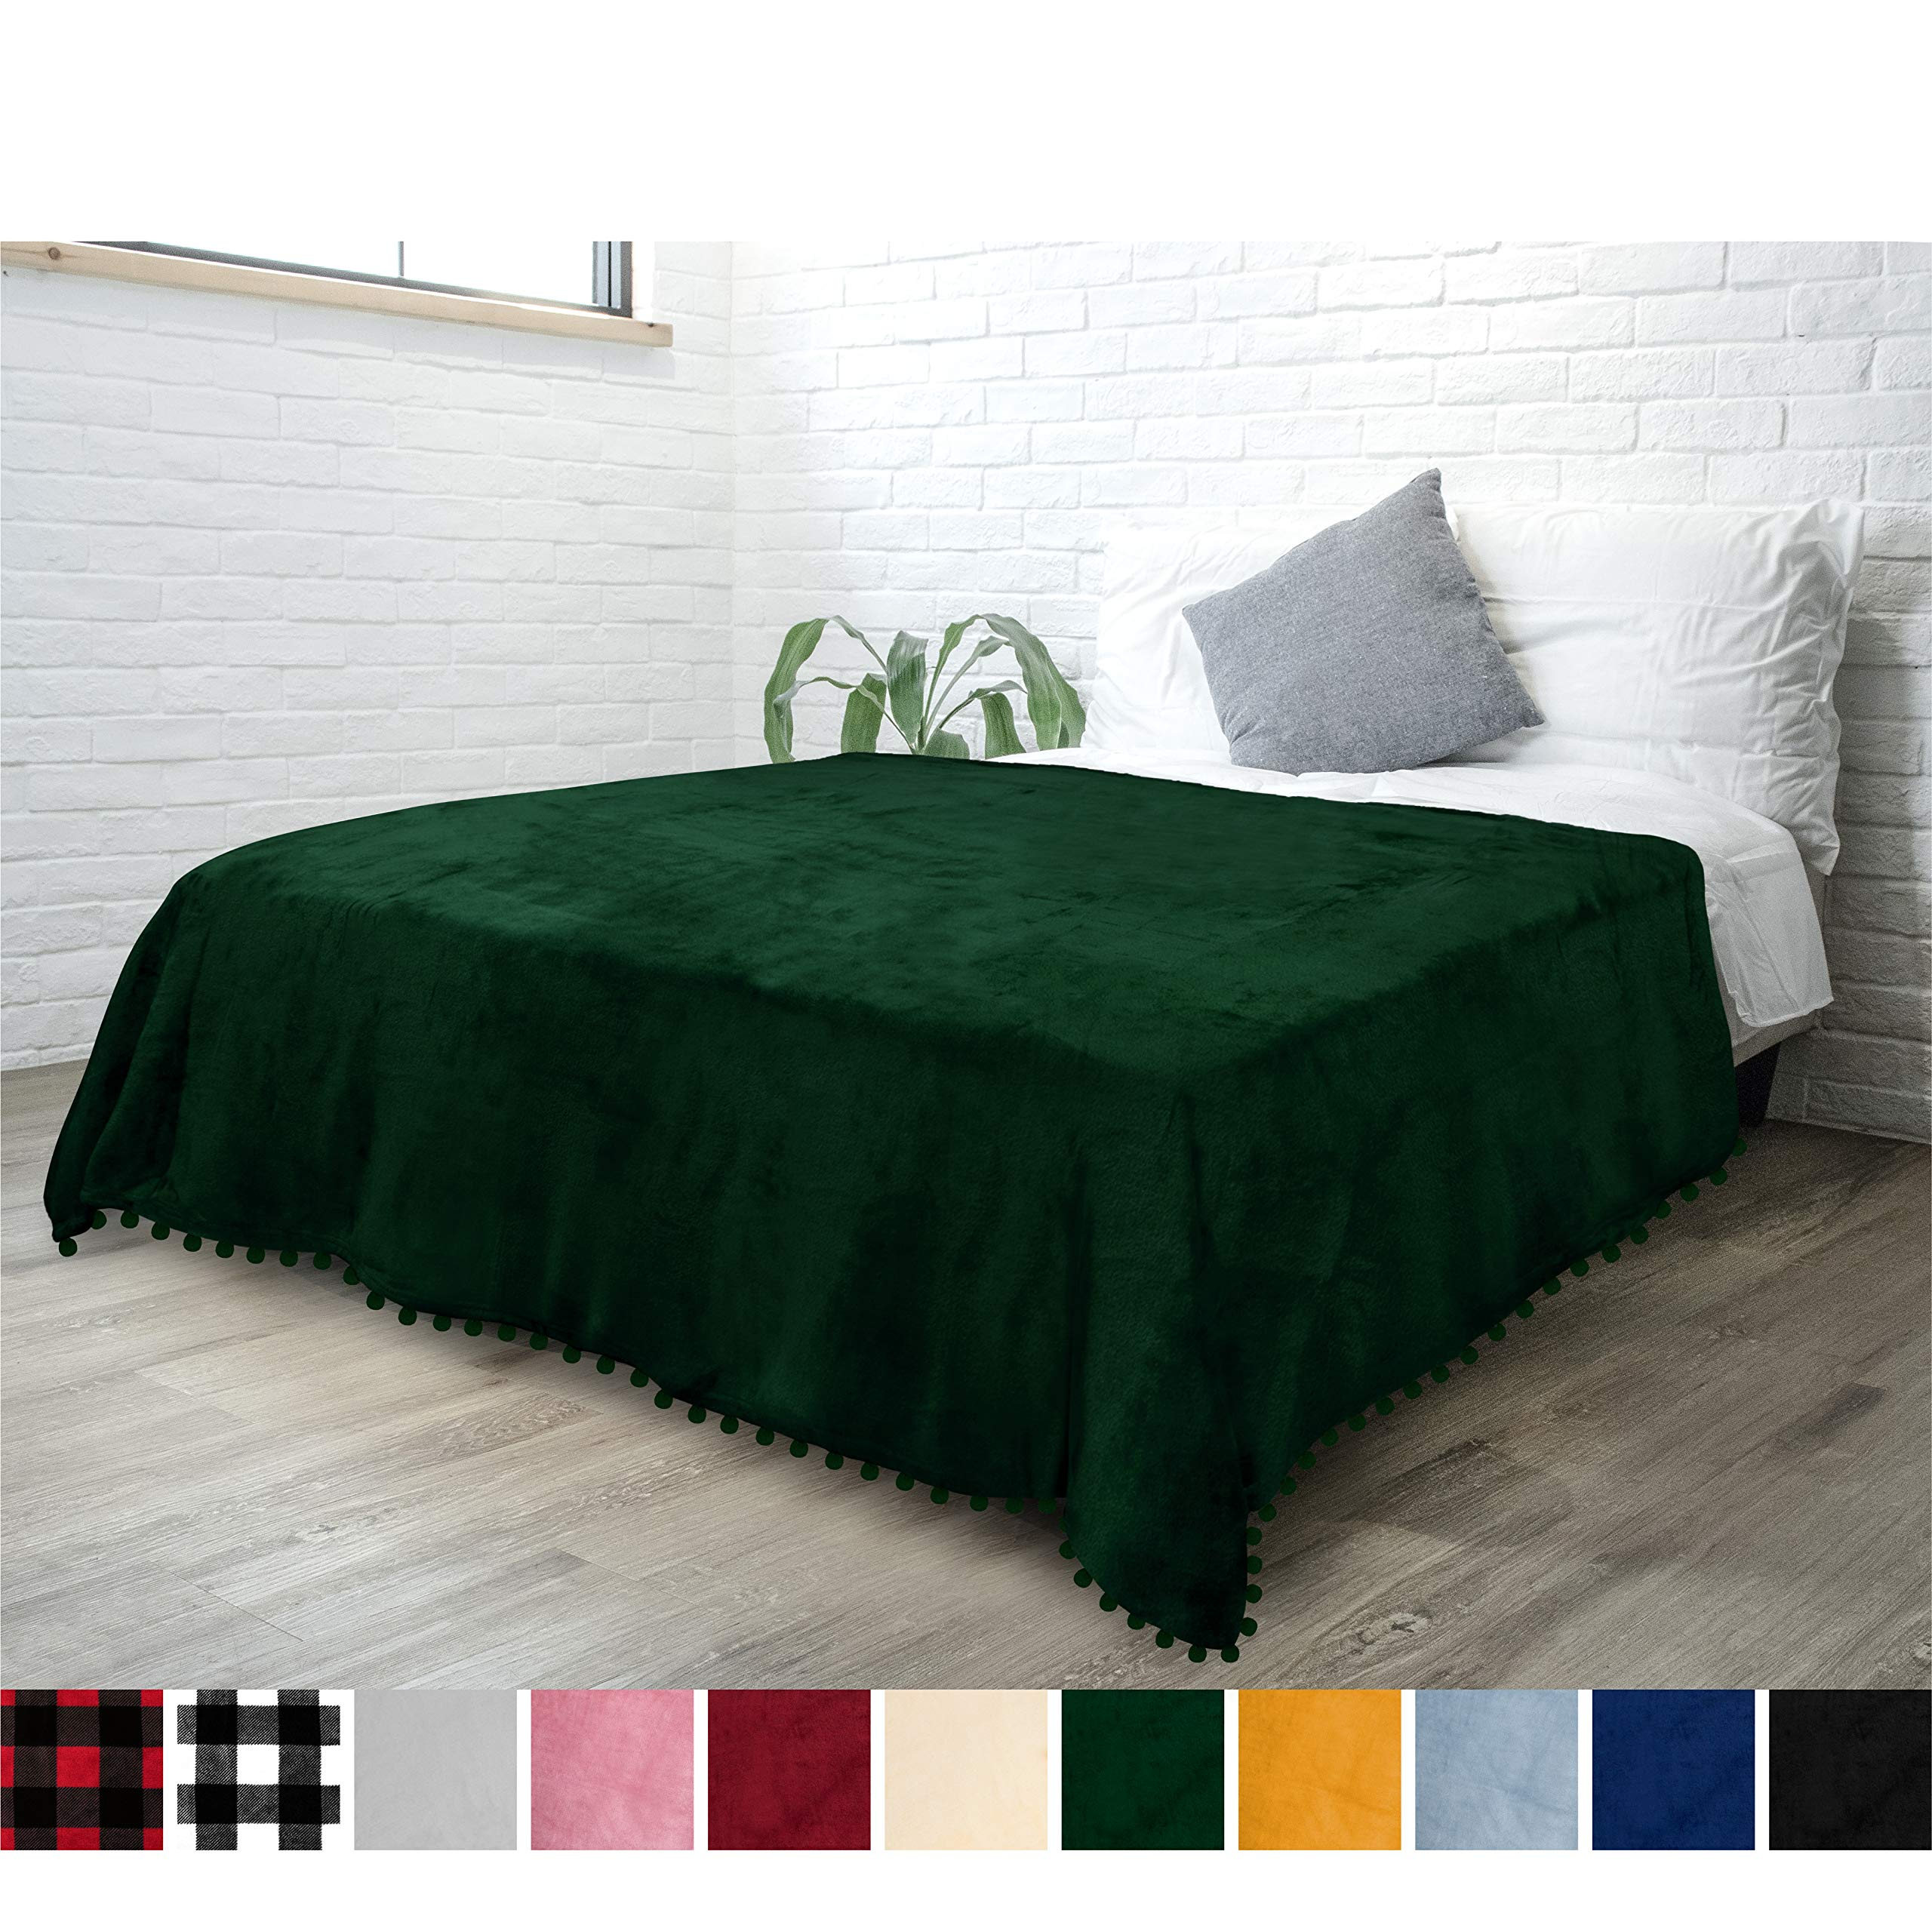 PAVILIA Fleece Throw Blanket with Pom Pom Fringe | Emerald Green Flannel Throw | Super Soft Lightweight Microfiber Polyester | Plush, Fuzzy, Cozy, Dark Green | 60 x 80 Inches